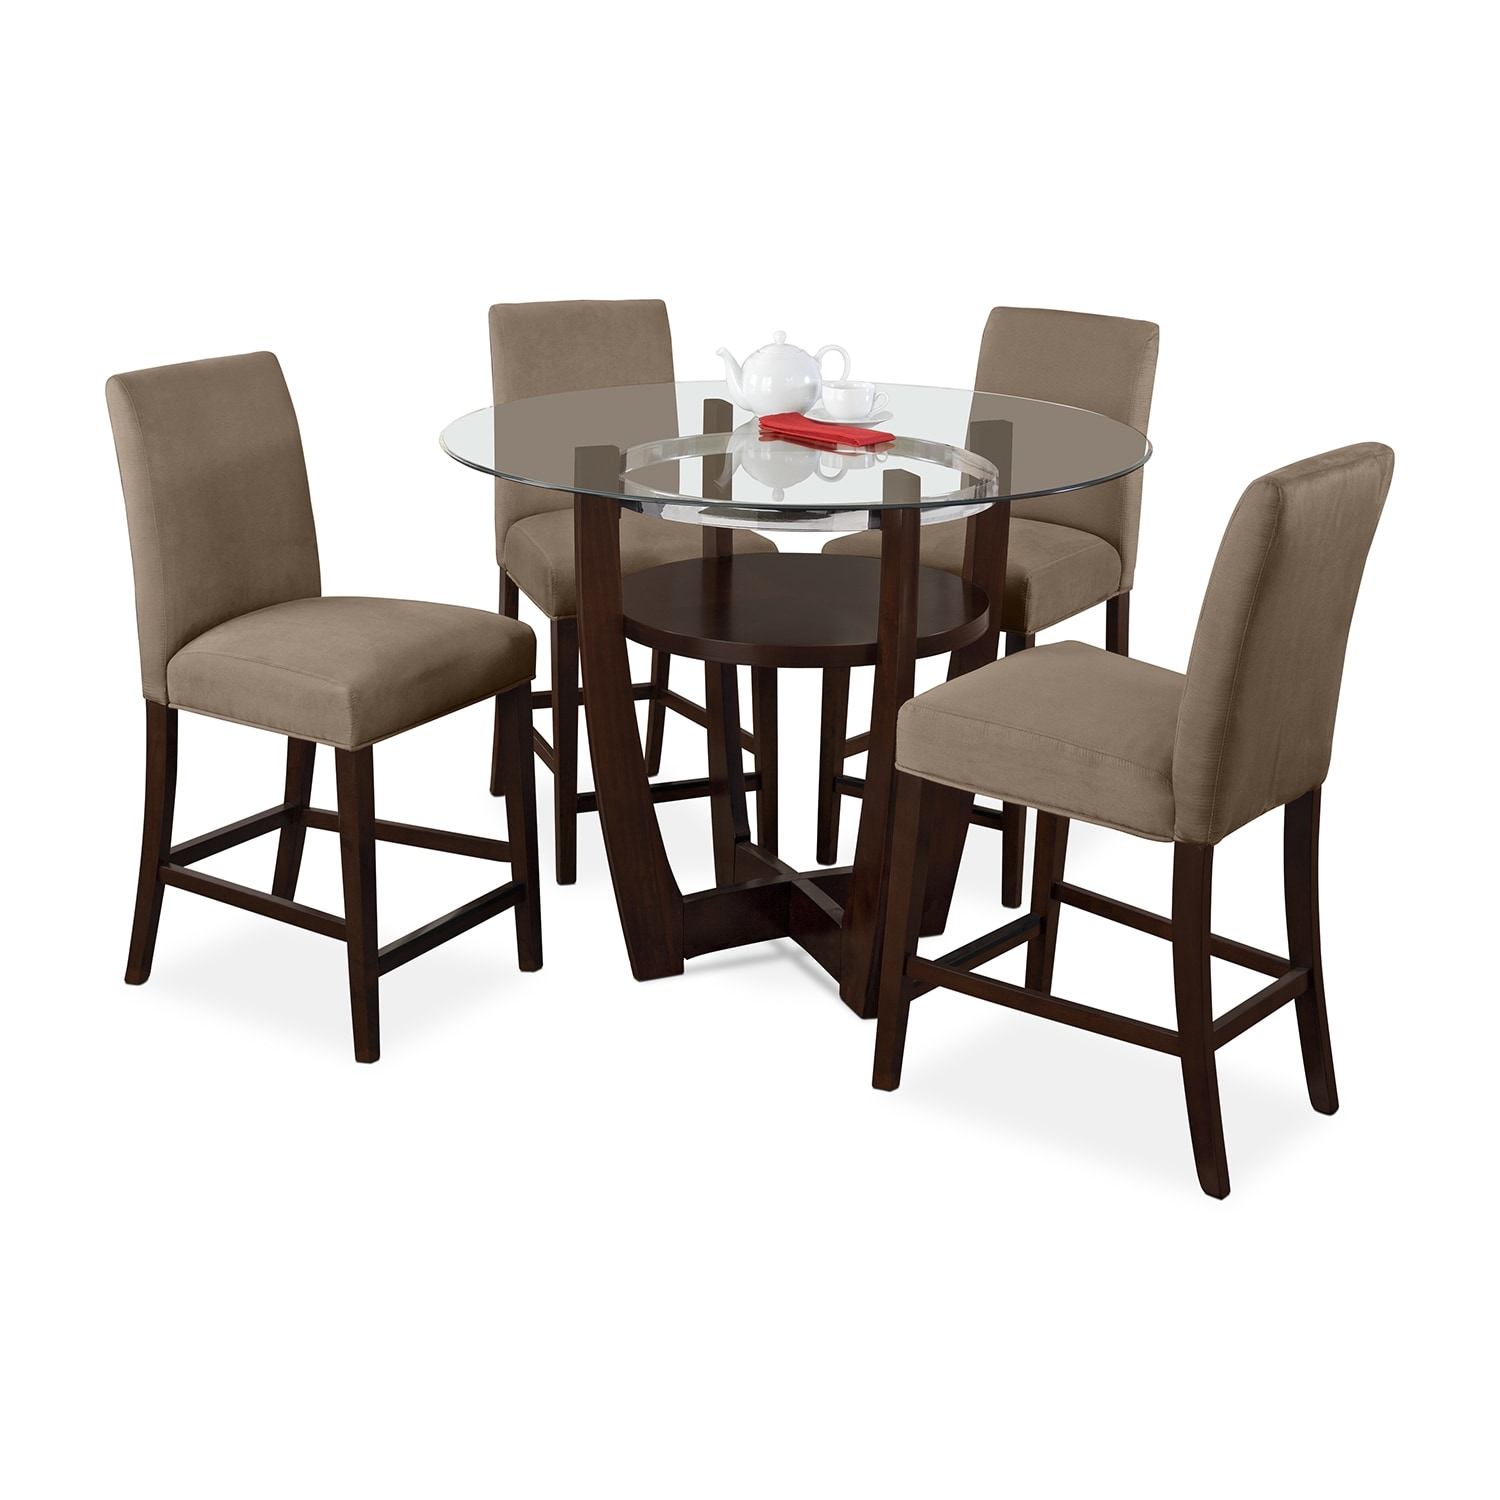 Dining Room Furniture - Alcove Counter-Height Dinette with Four Side Chairs - Beige